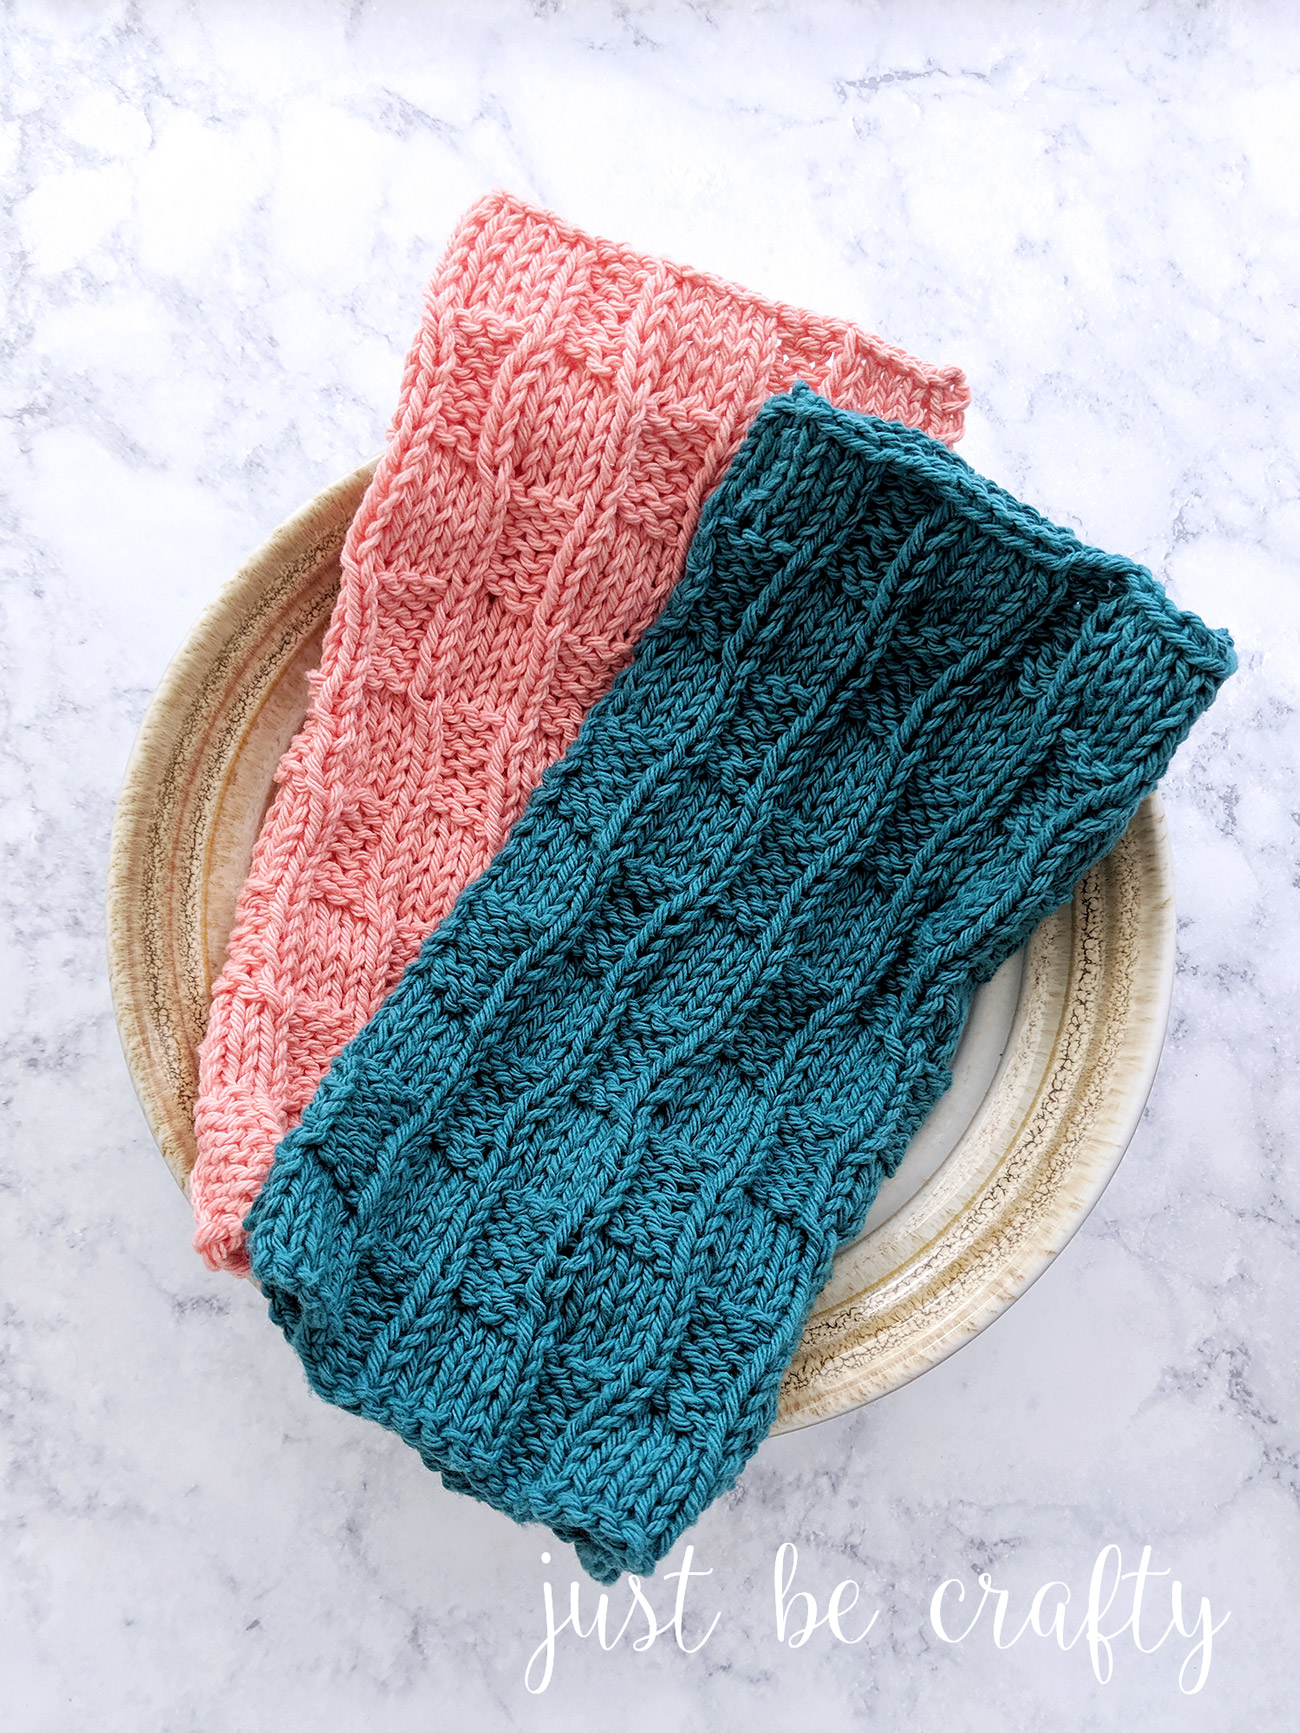 Checkered Waves Knitted Dishcloth Pattern